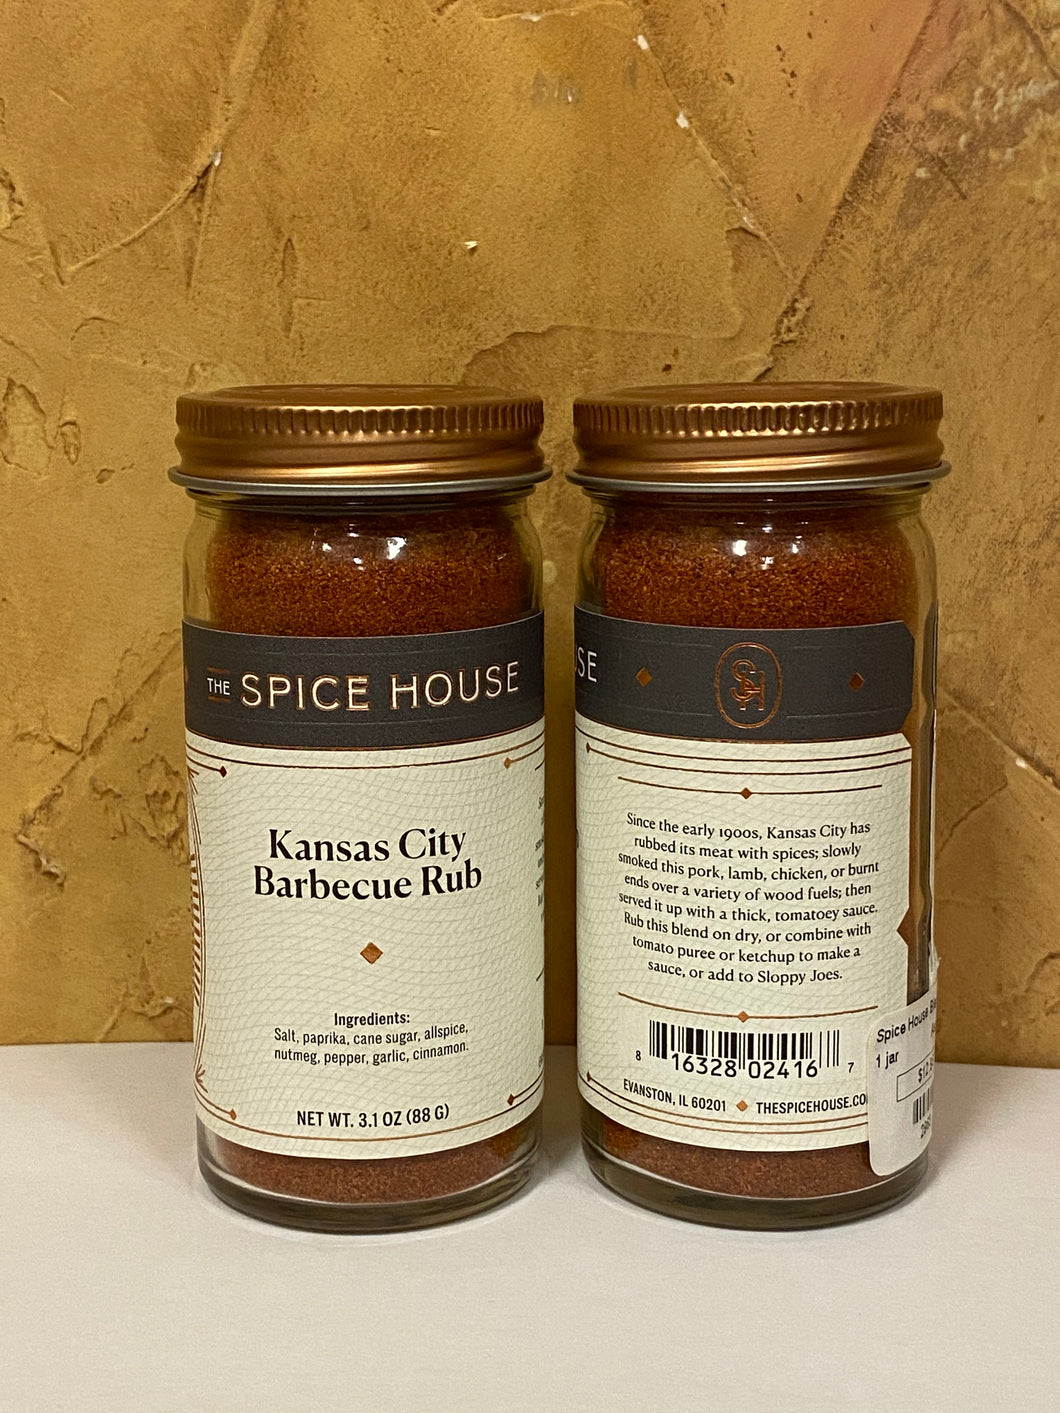 Kansas City Barbecue Rub